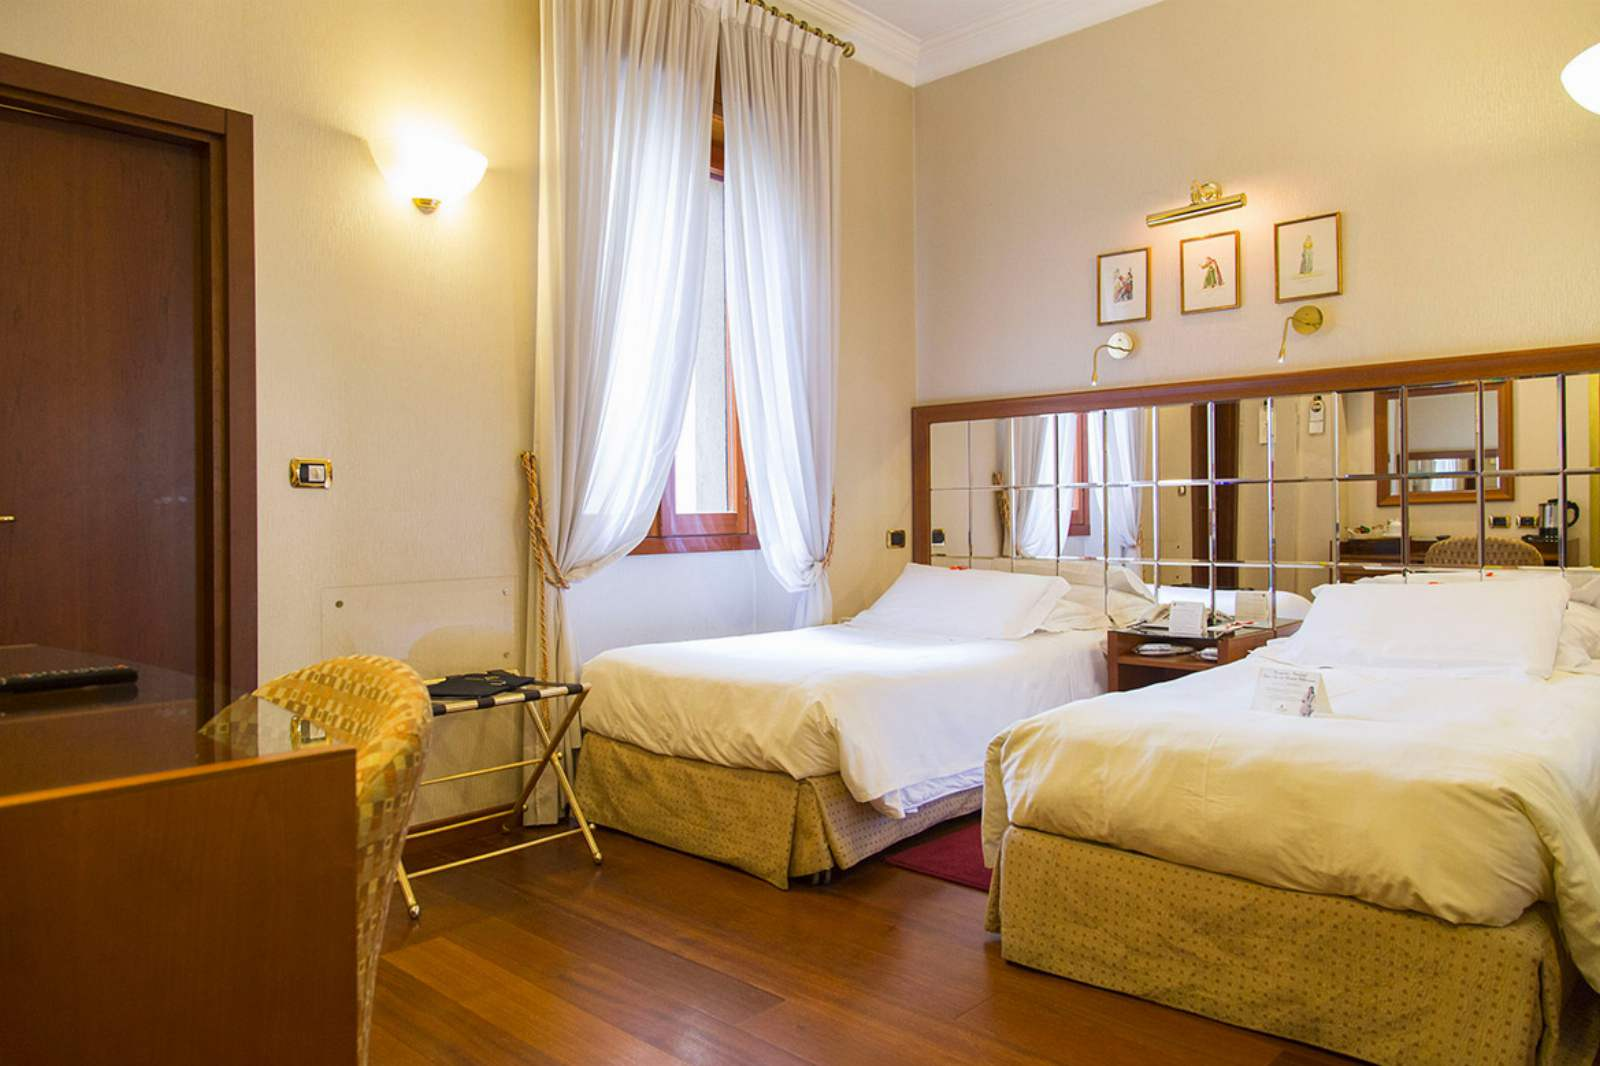 Hotel Berna: room / property / locale photo. Image 2